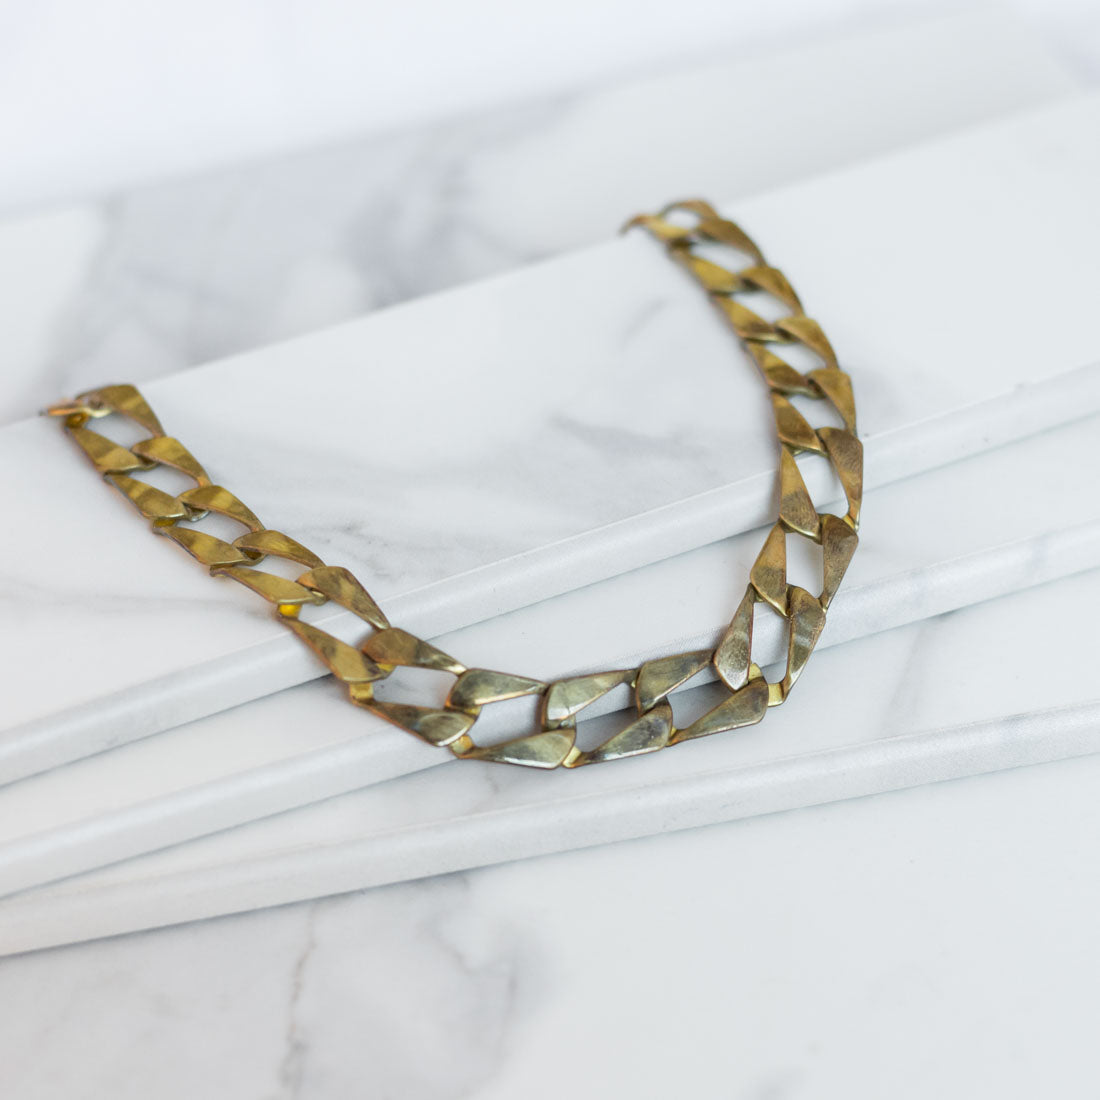 MUSCLE Necklace - Twisted Silver Jewelry